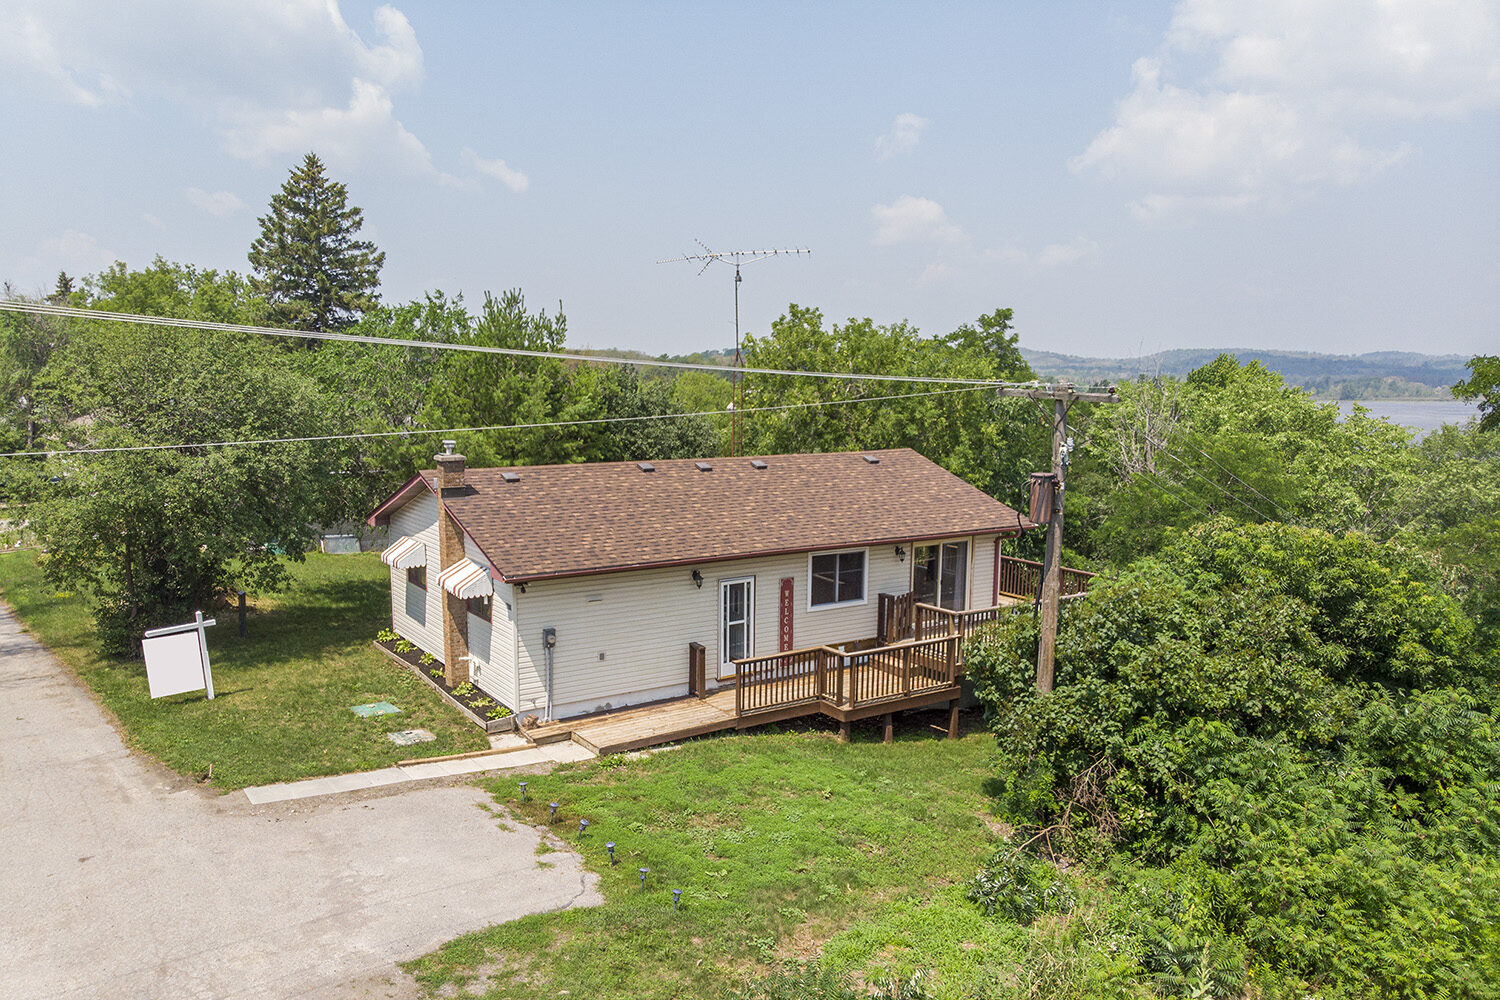 Bewdley Bungalow with Views of Rice Lake